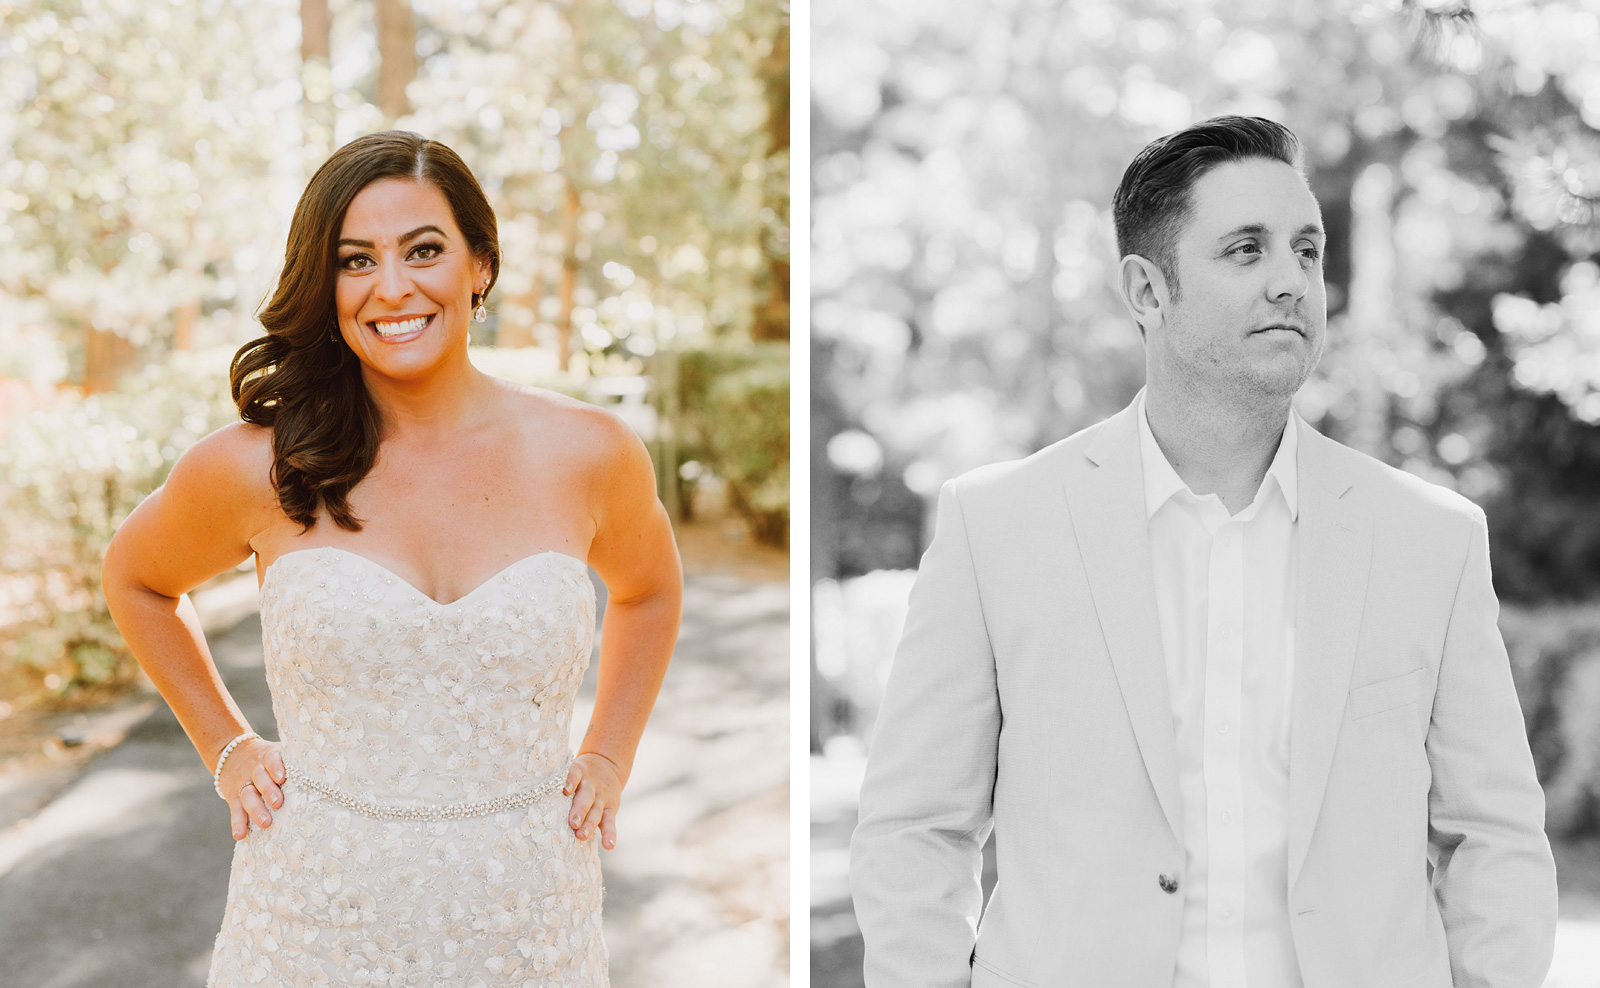 Portraits of Bride and Groom at an Incline Village Wedding in North Lake Tahoe